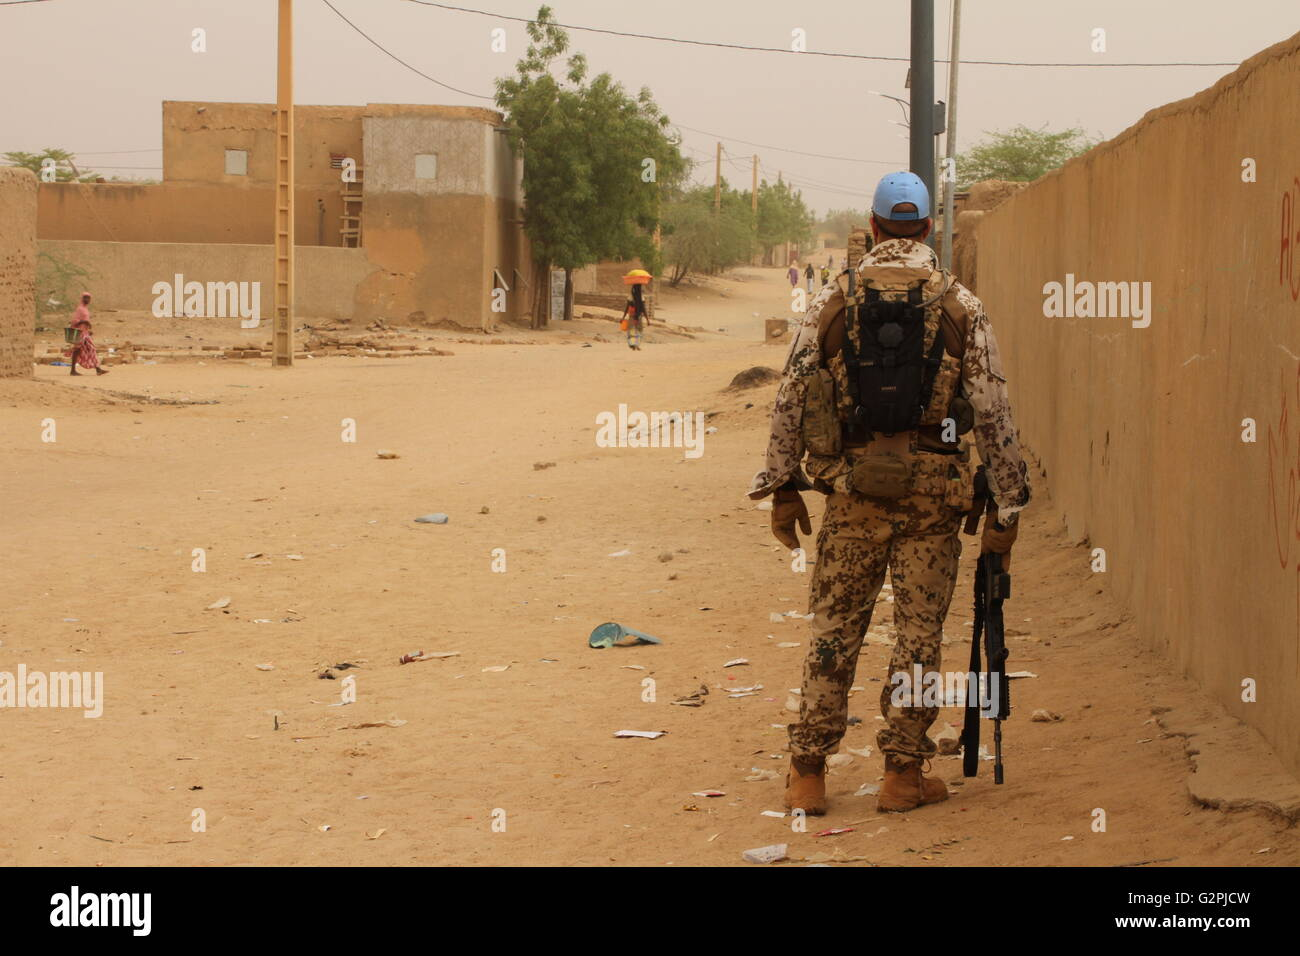 gao mali 7th may 2016 a bundeswehr soldier on patrol in gao